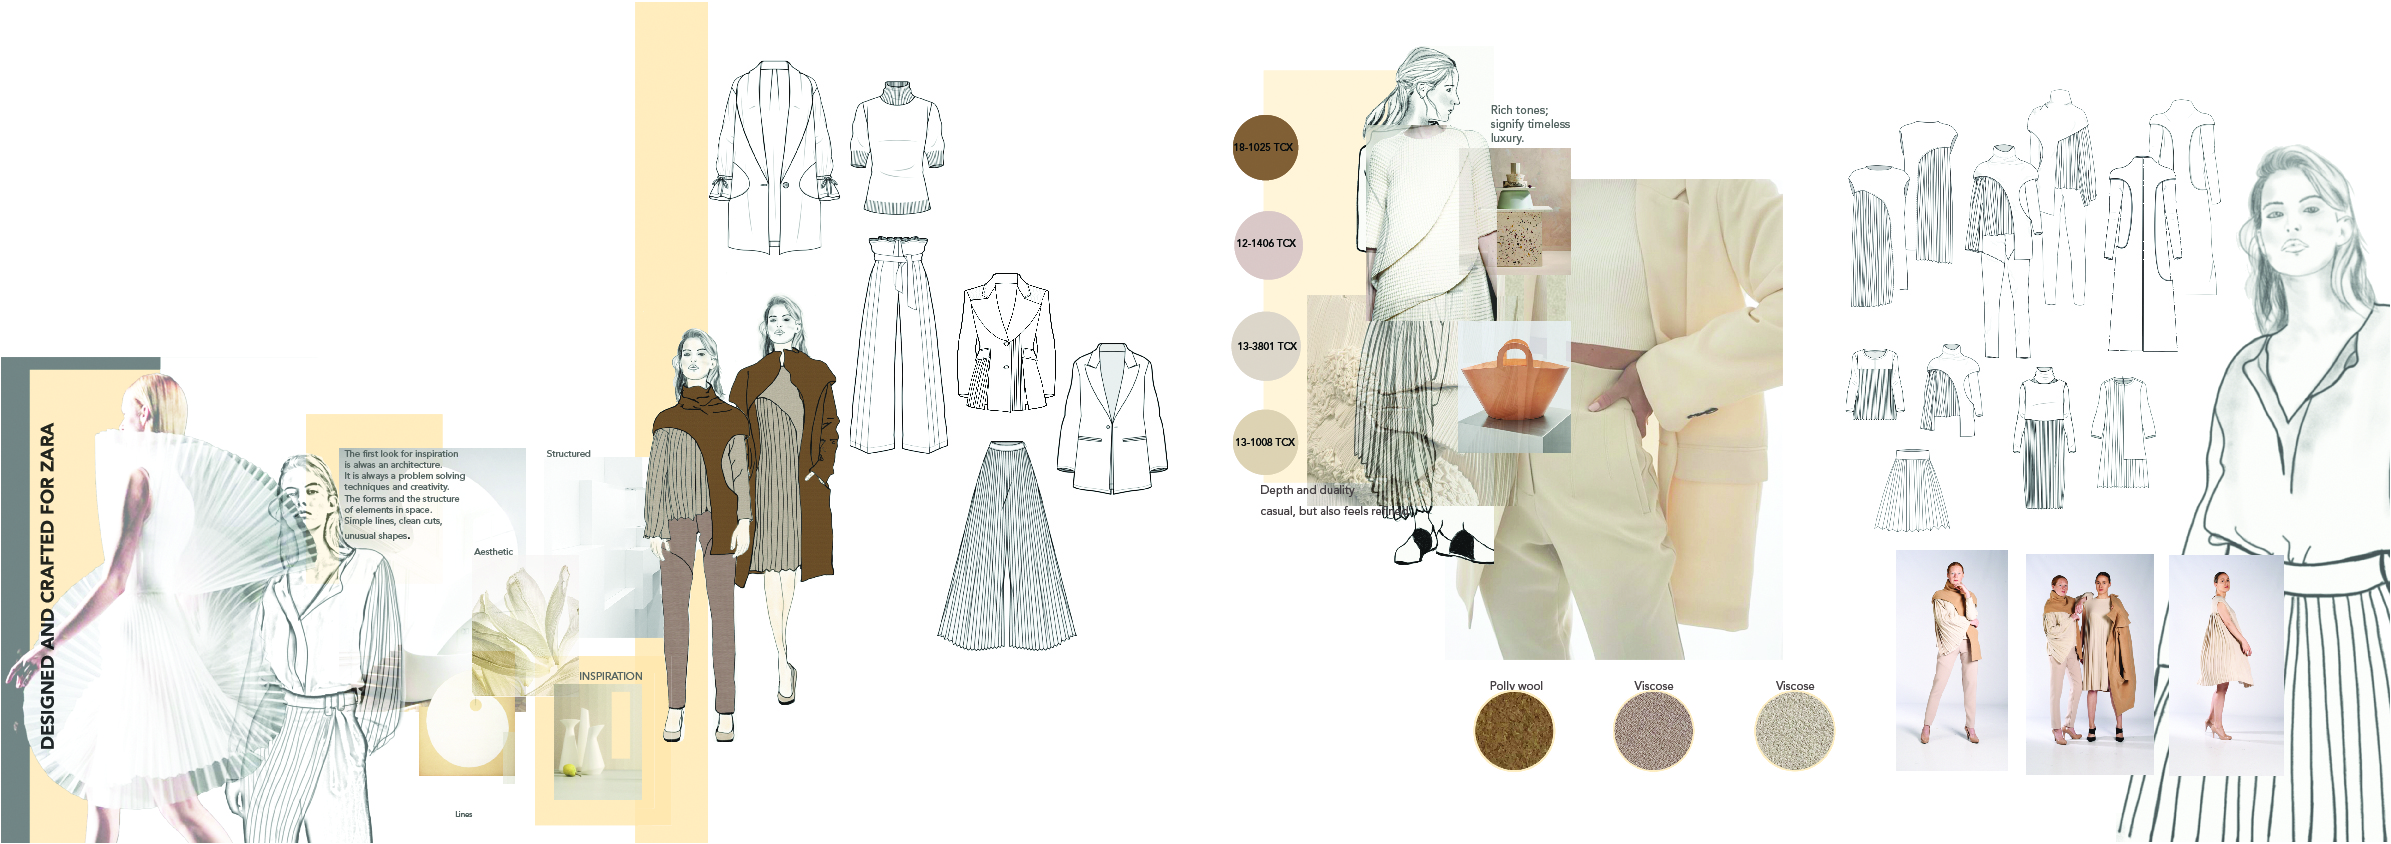 Donata Zawojak_2149218_assignsubmission_file_9 designed and crafted